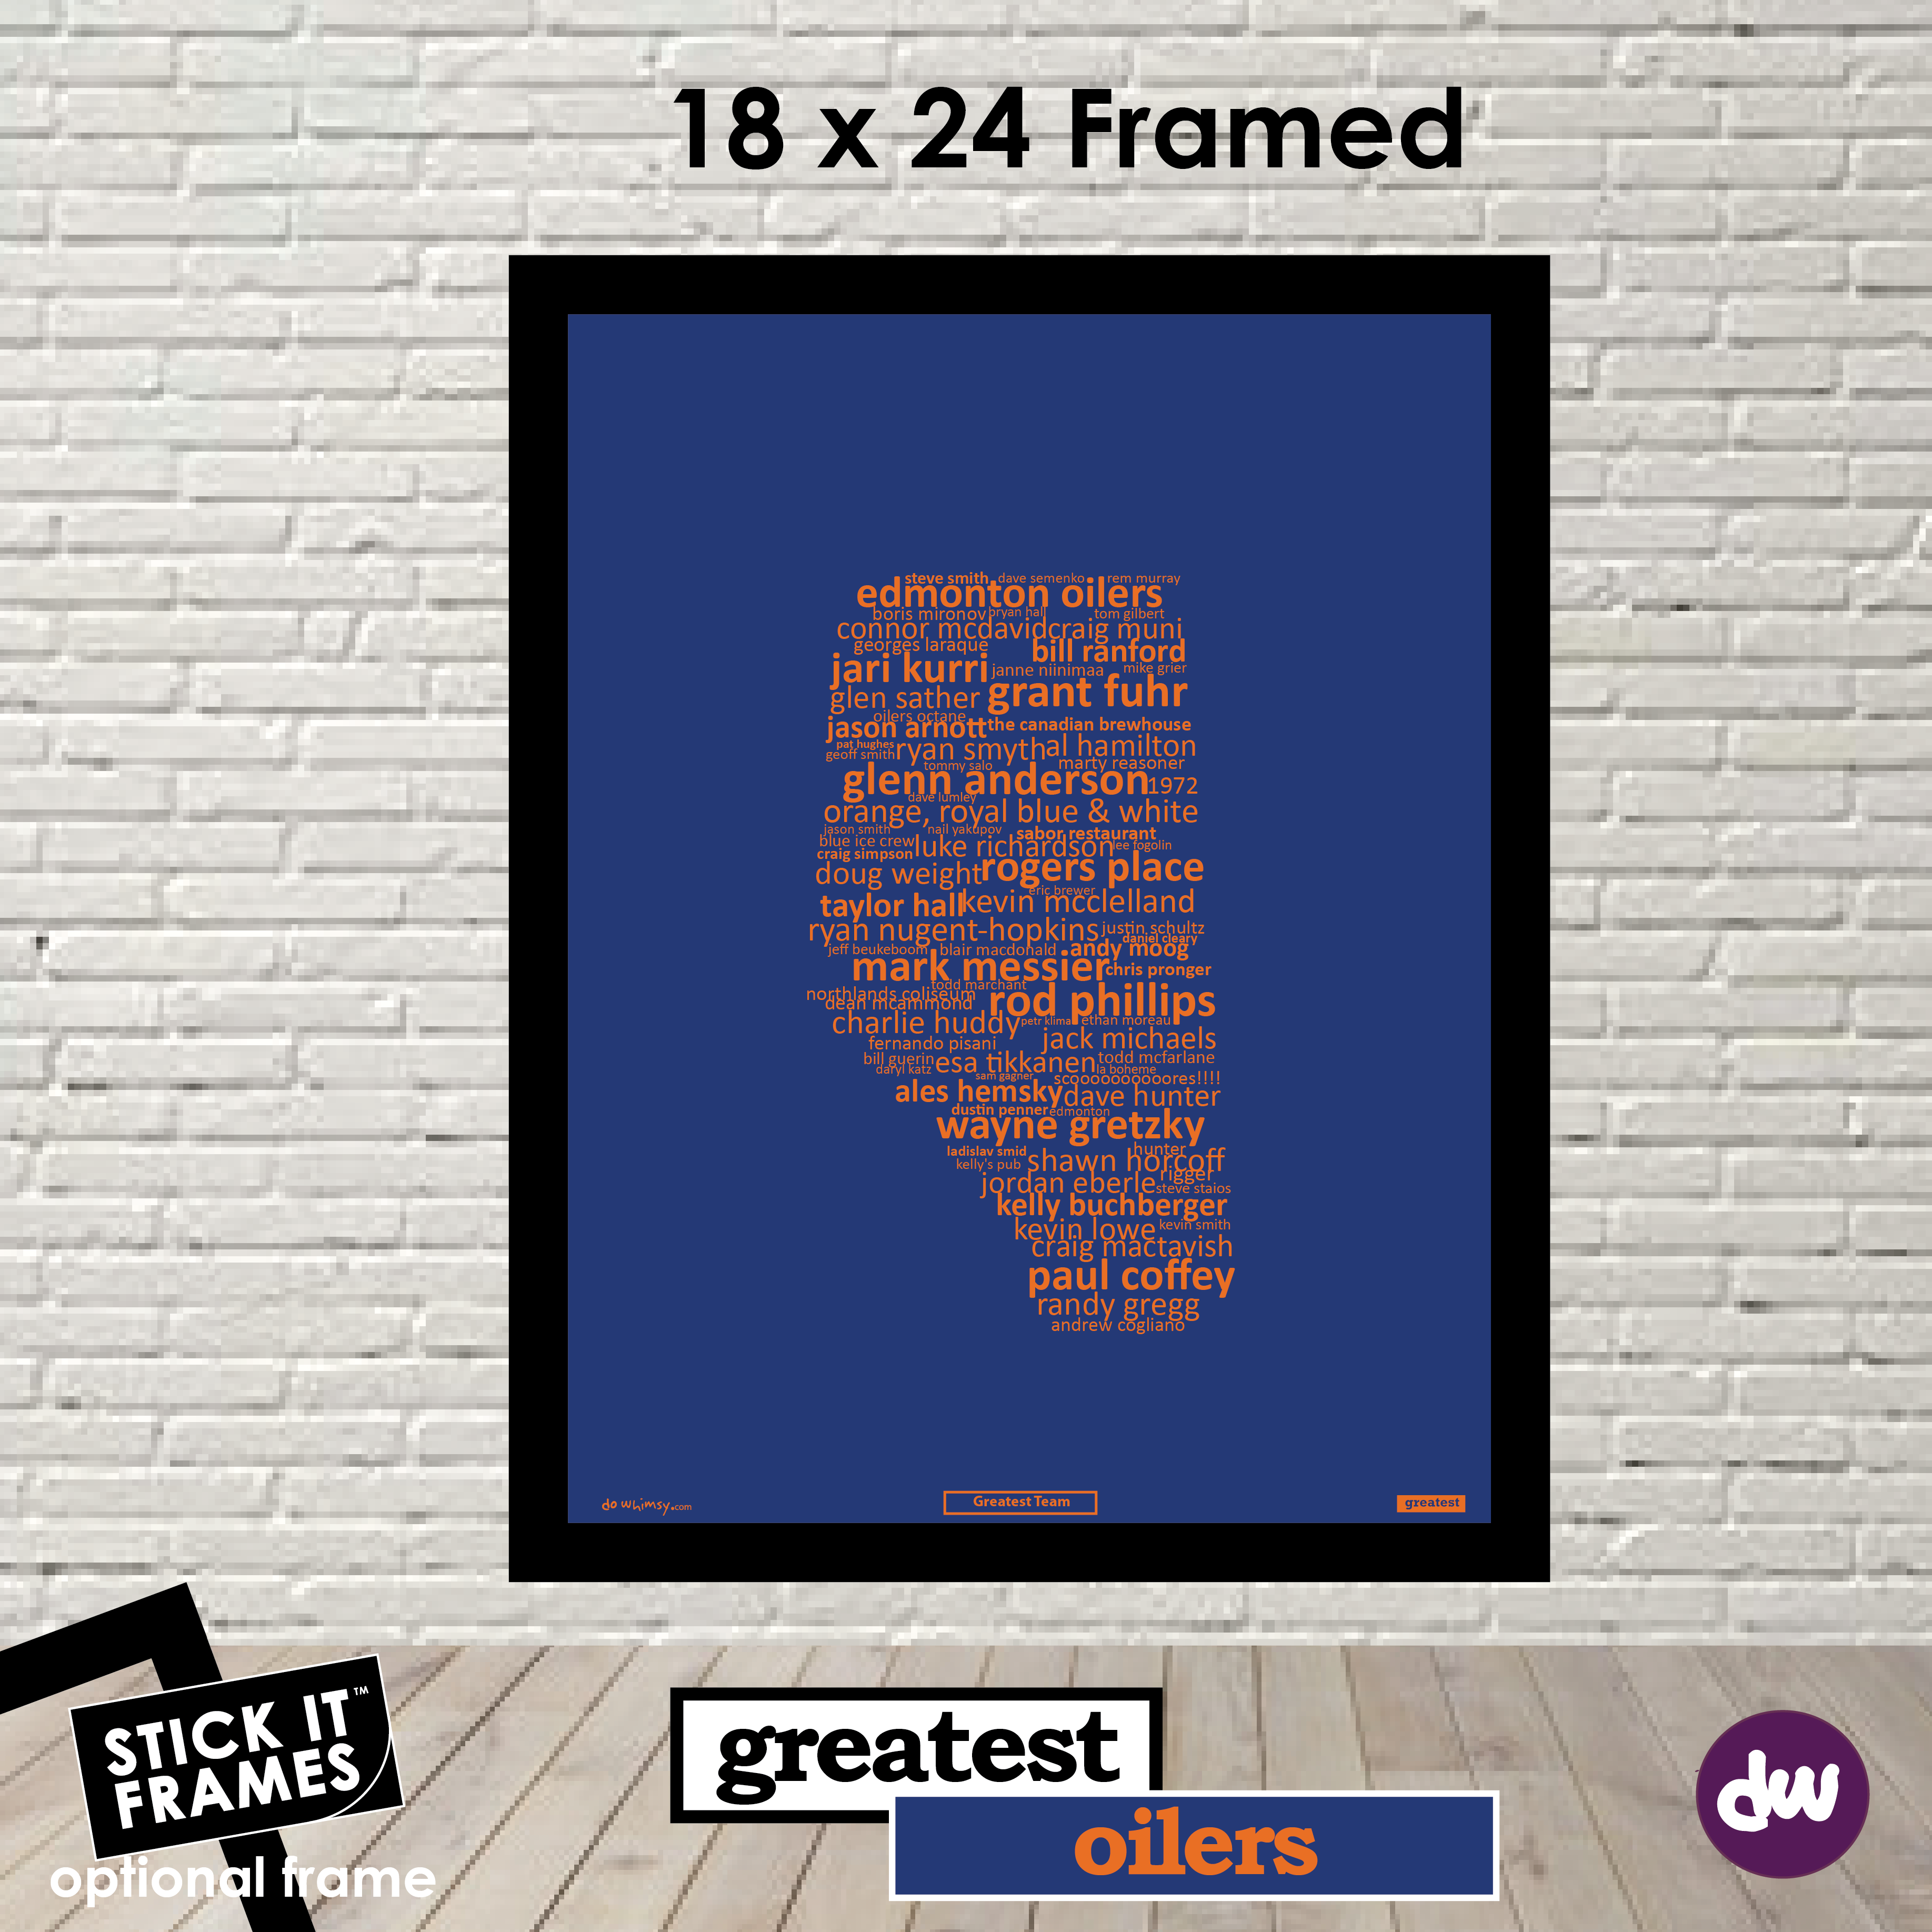 Greatest Edmonton (Oilers) - All Products (Shirt, Art, Frames (R))